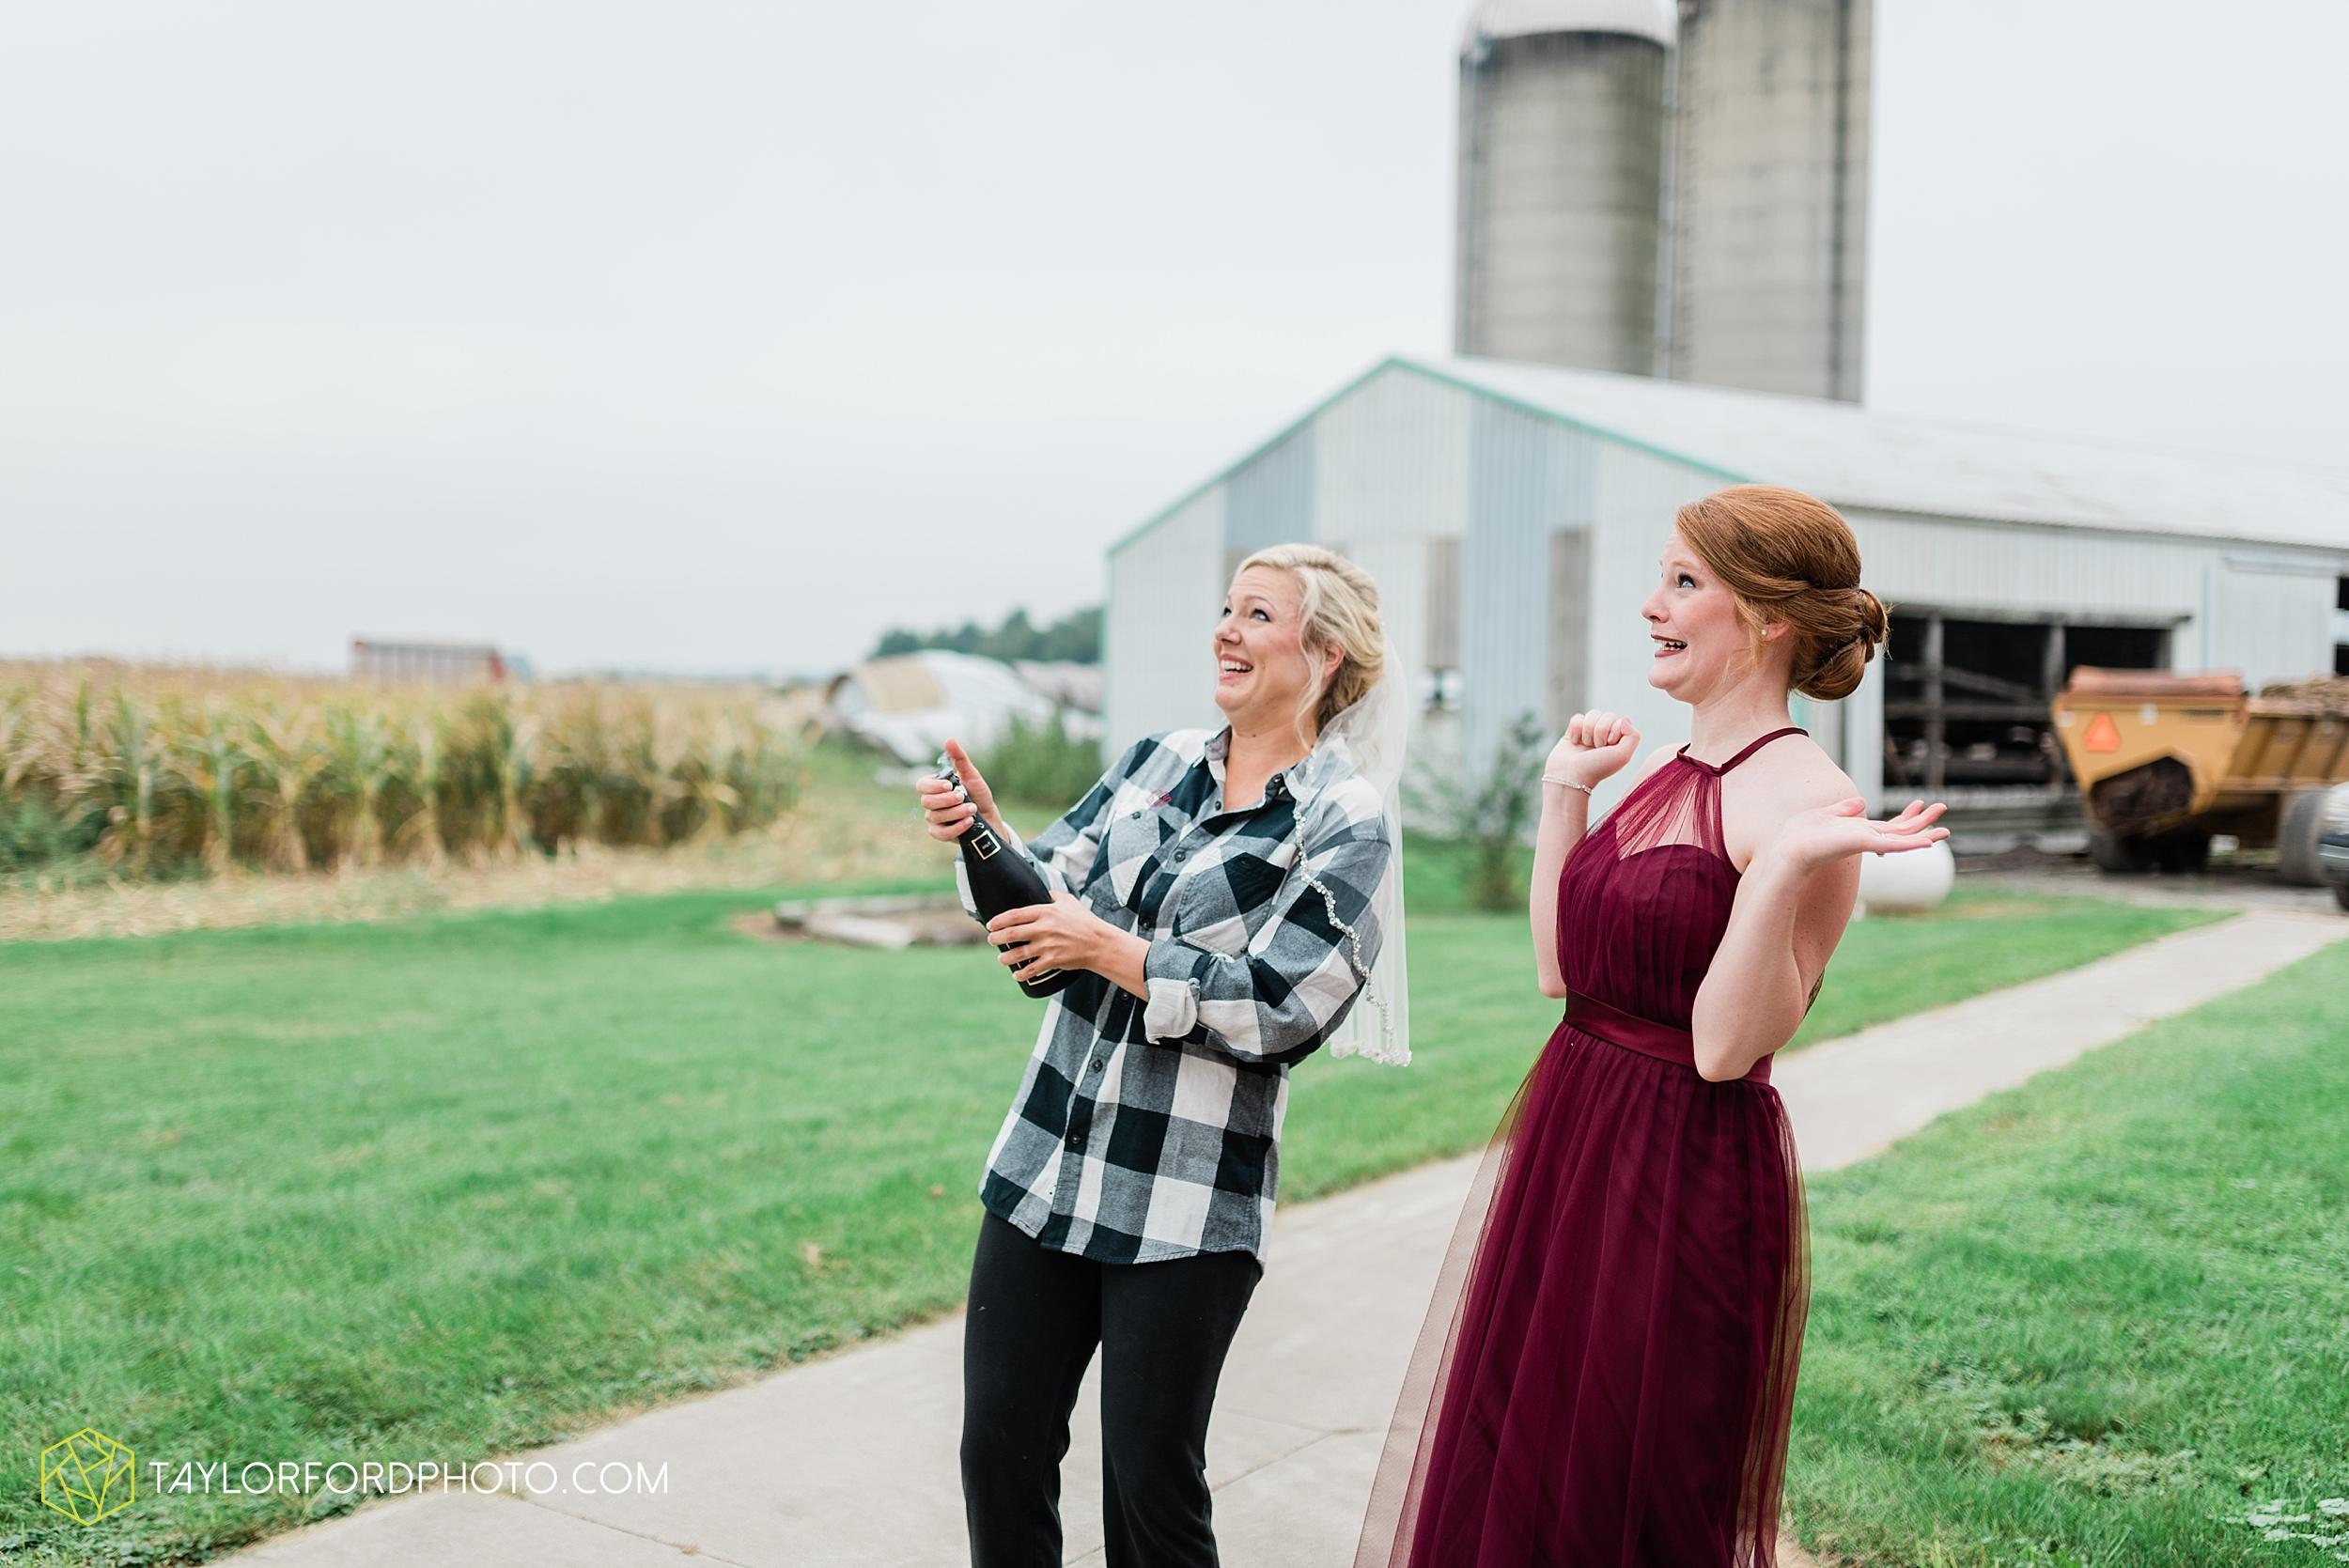 gayle-rayman-mike-steele-ottoville-ohio-wedding-immaculate-conception-parish-center-wedding-sycamore-lake-winery-wannamachers-photographer-taylor-ford-photography_0381.jpg